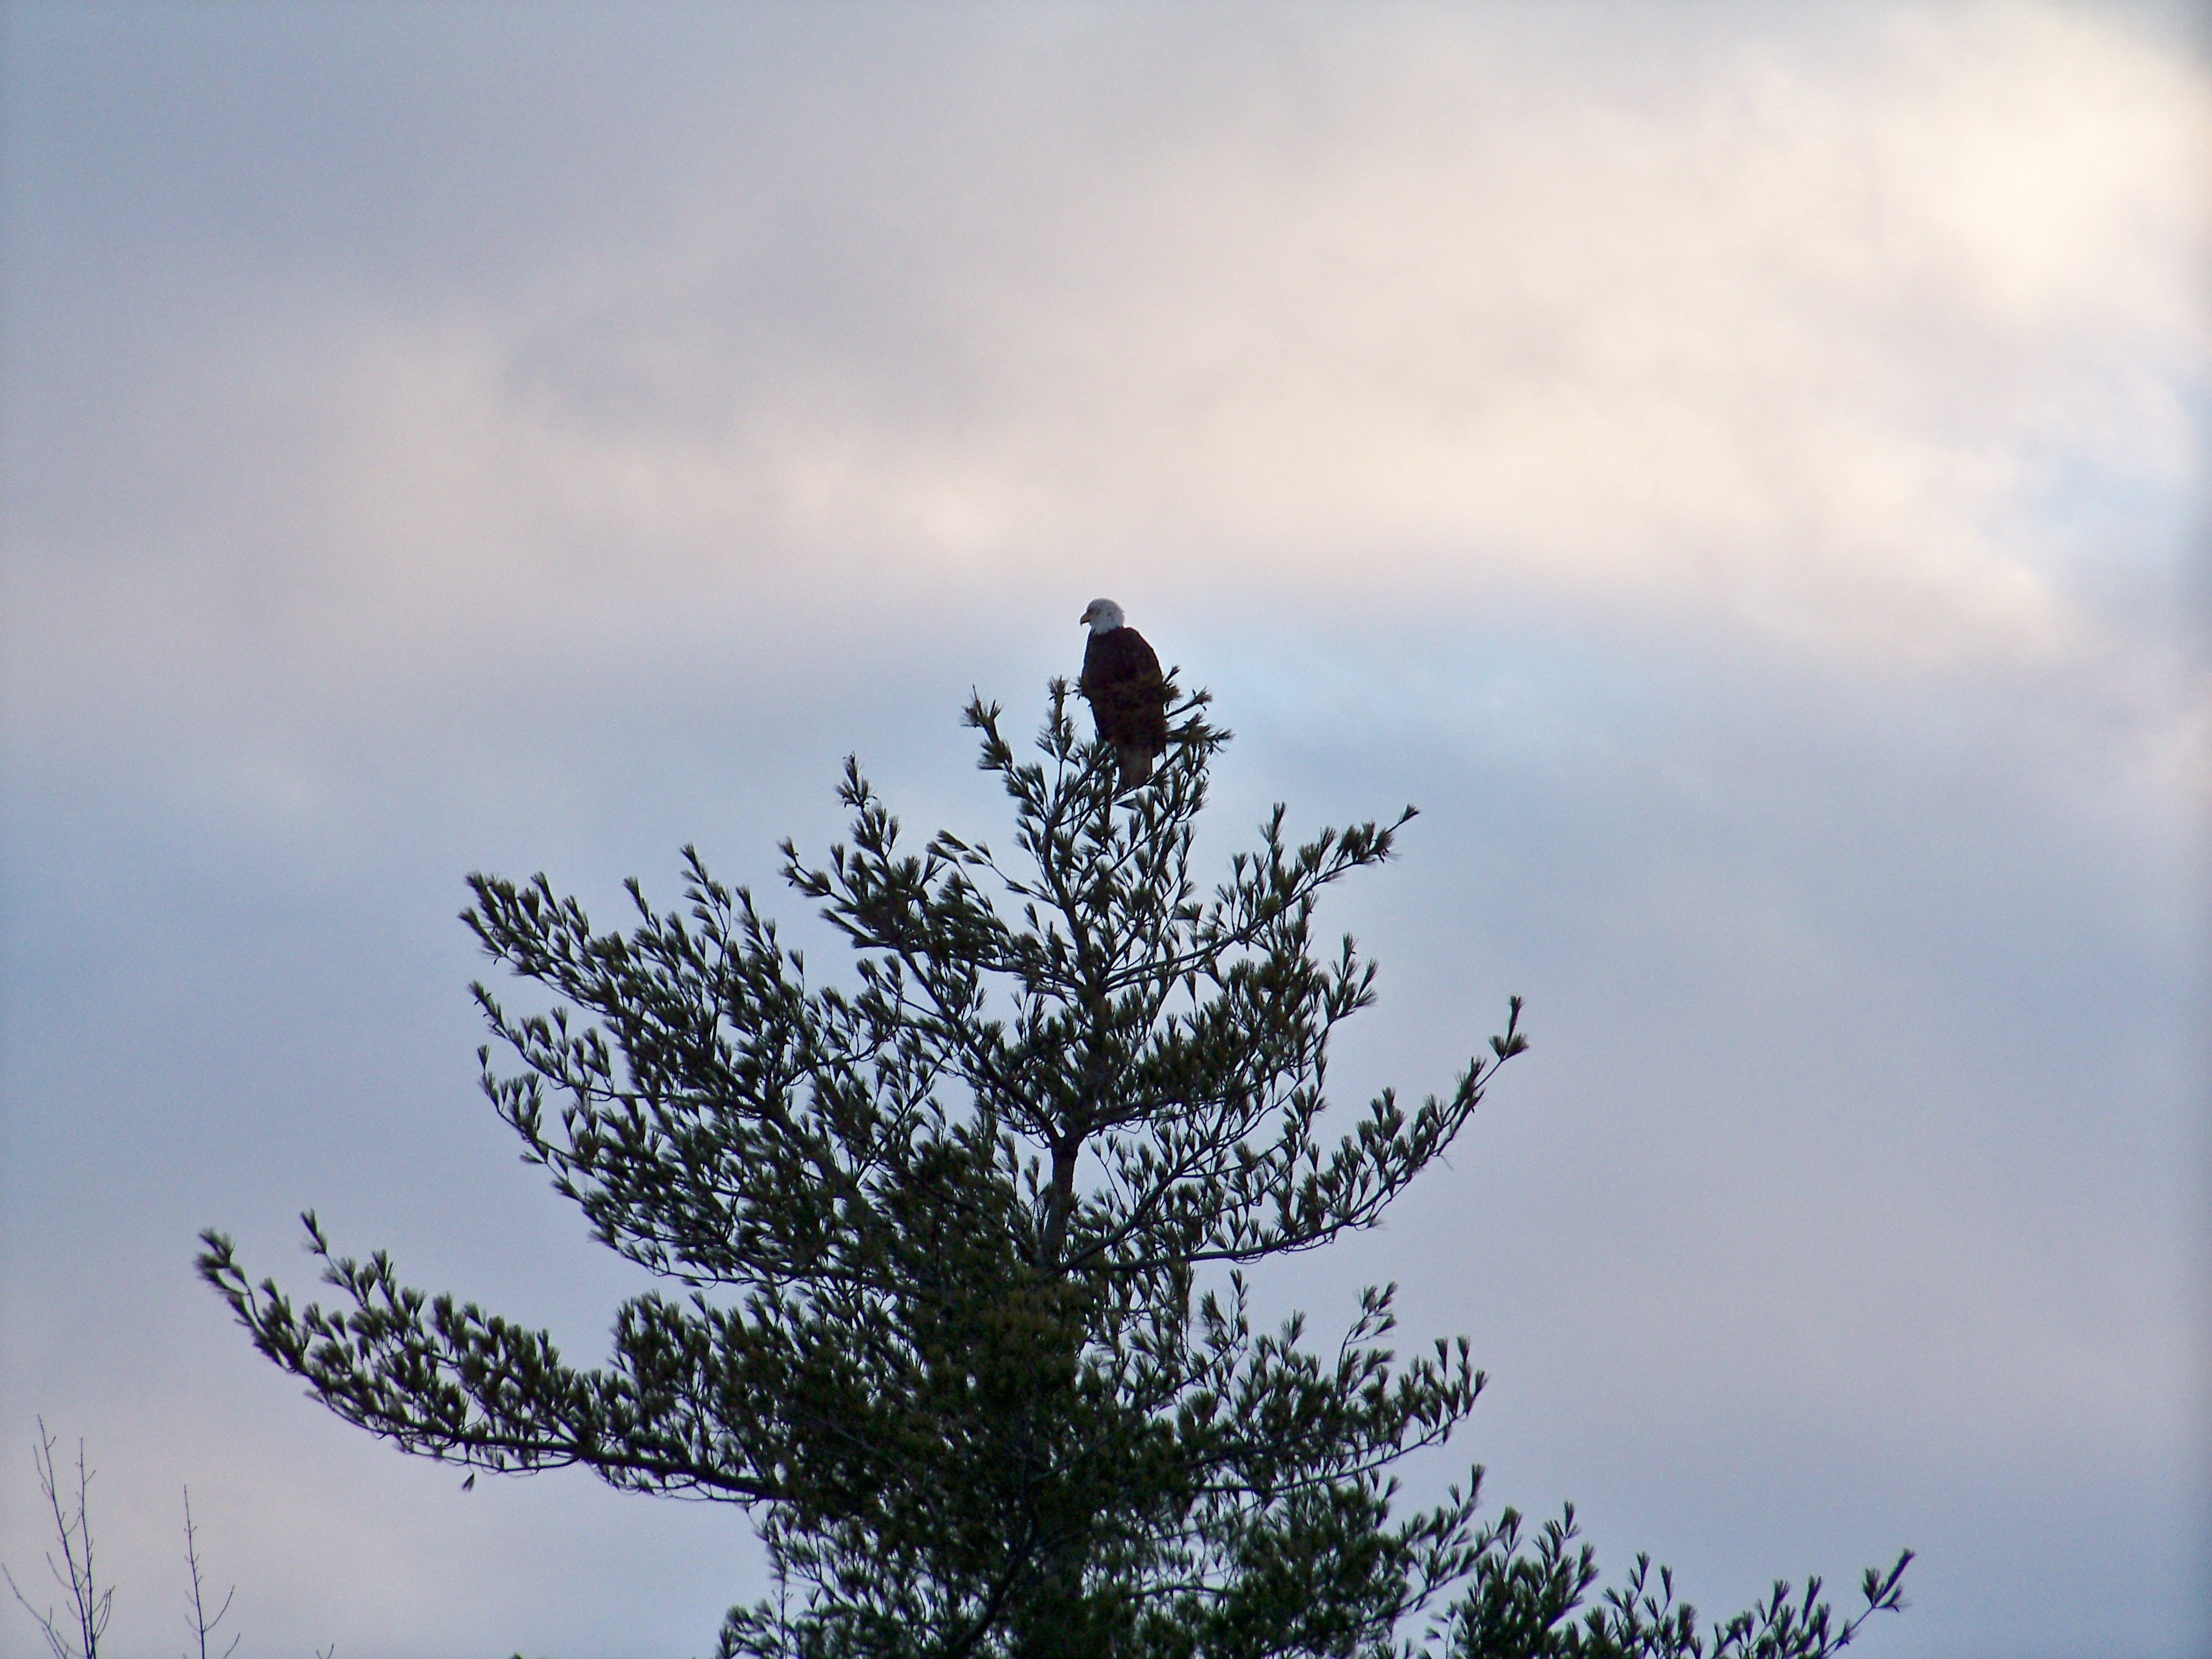 Bald Eagle by the pond